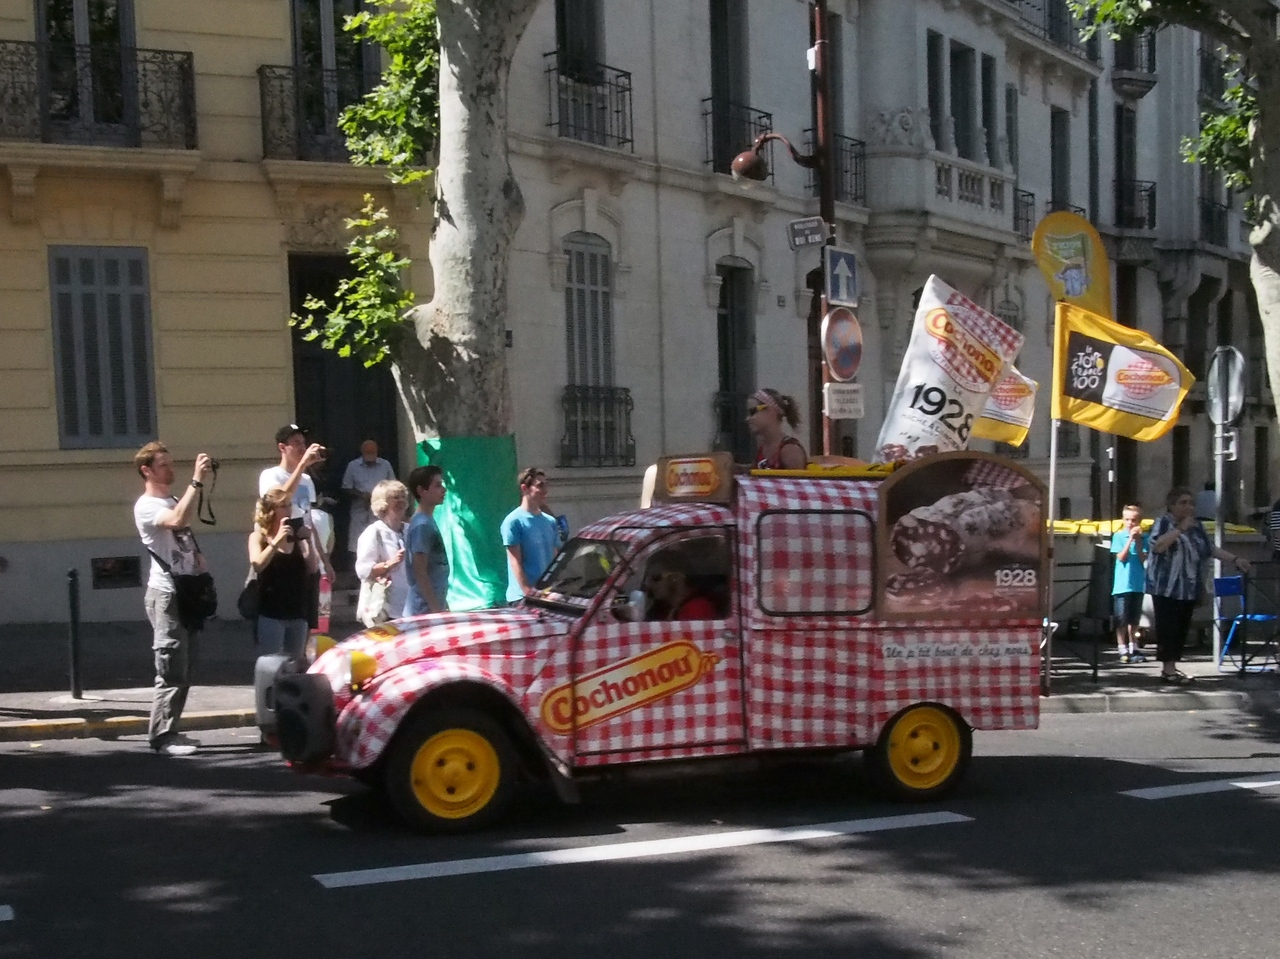 The promotional caravane